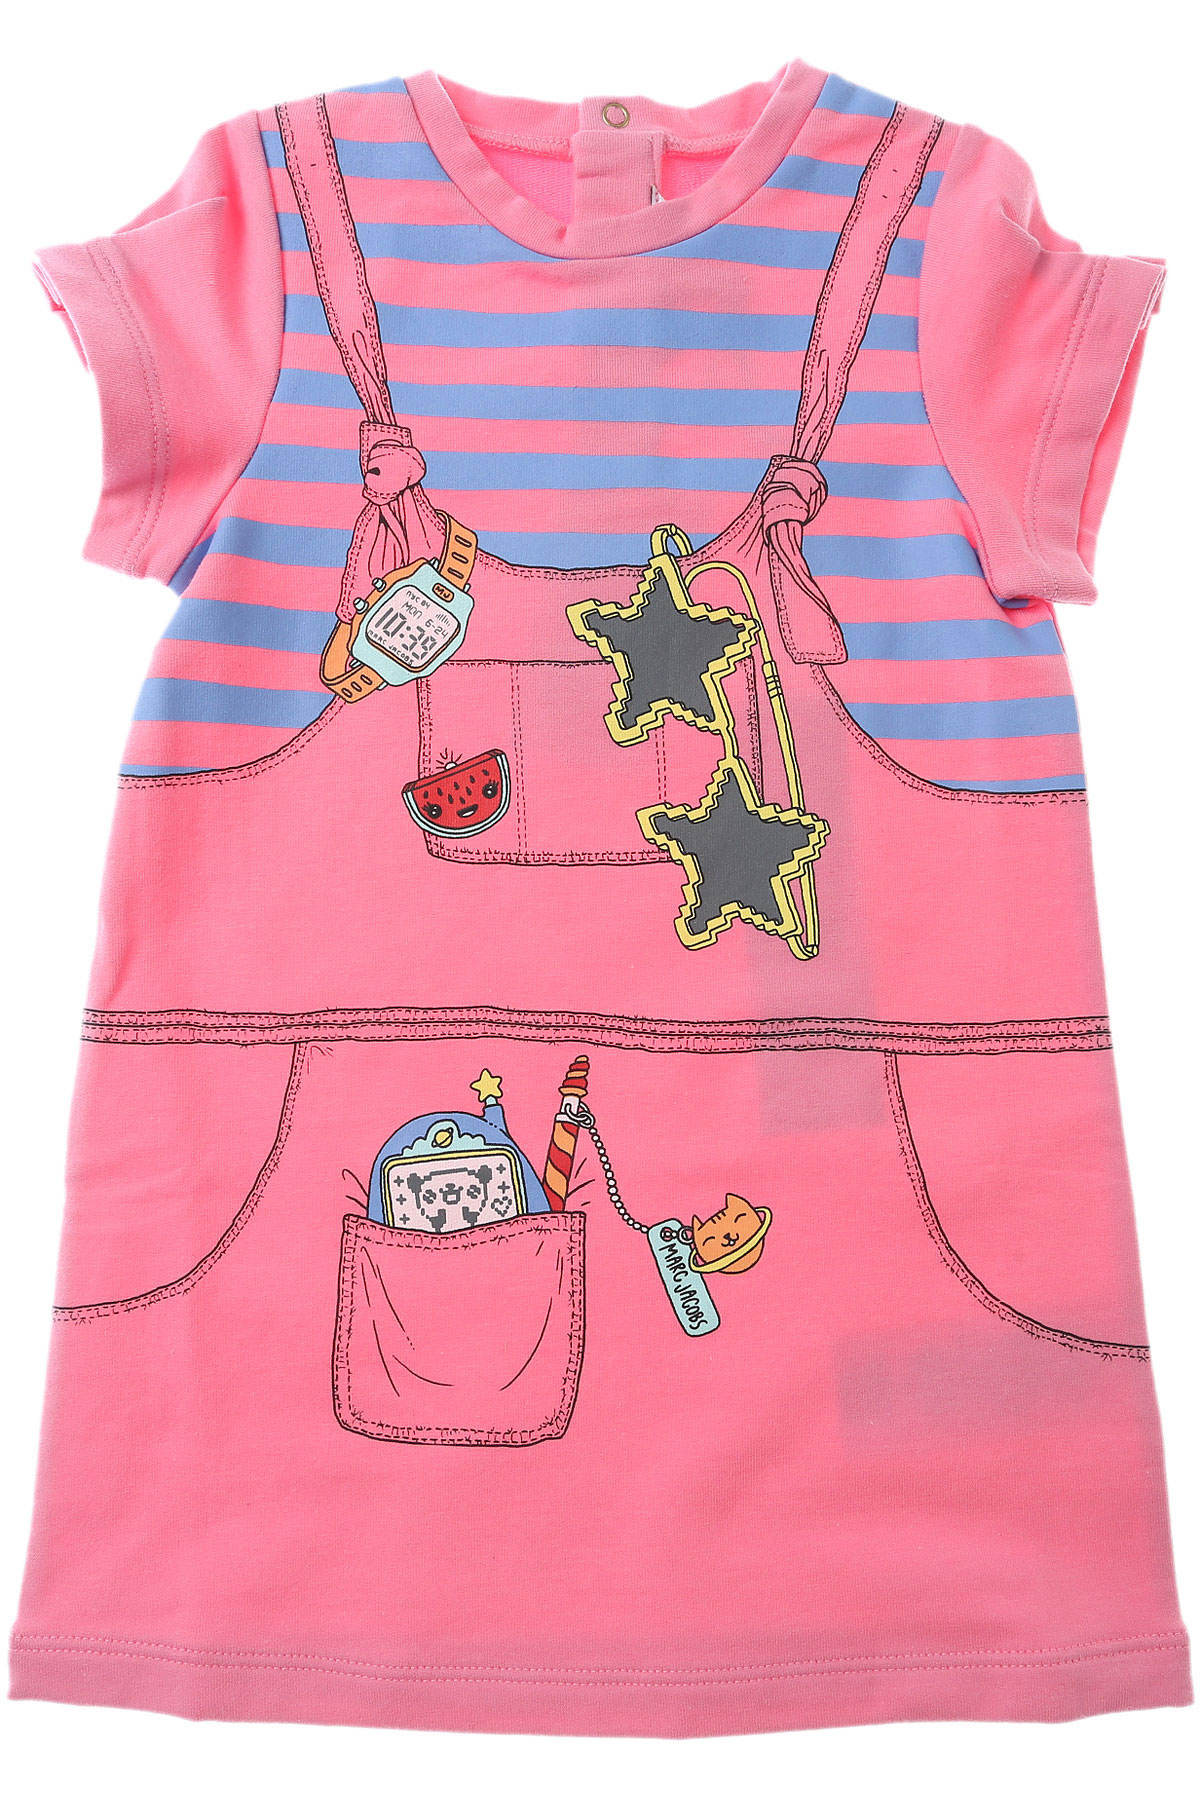 Marc Jacobs Baby Dress for Girls On Sale, Pink, Cotton, 2017, 12M 2Y 9M USA-446603